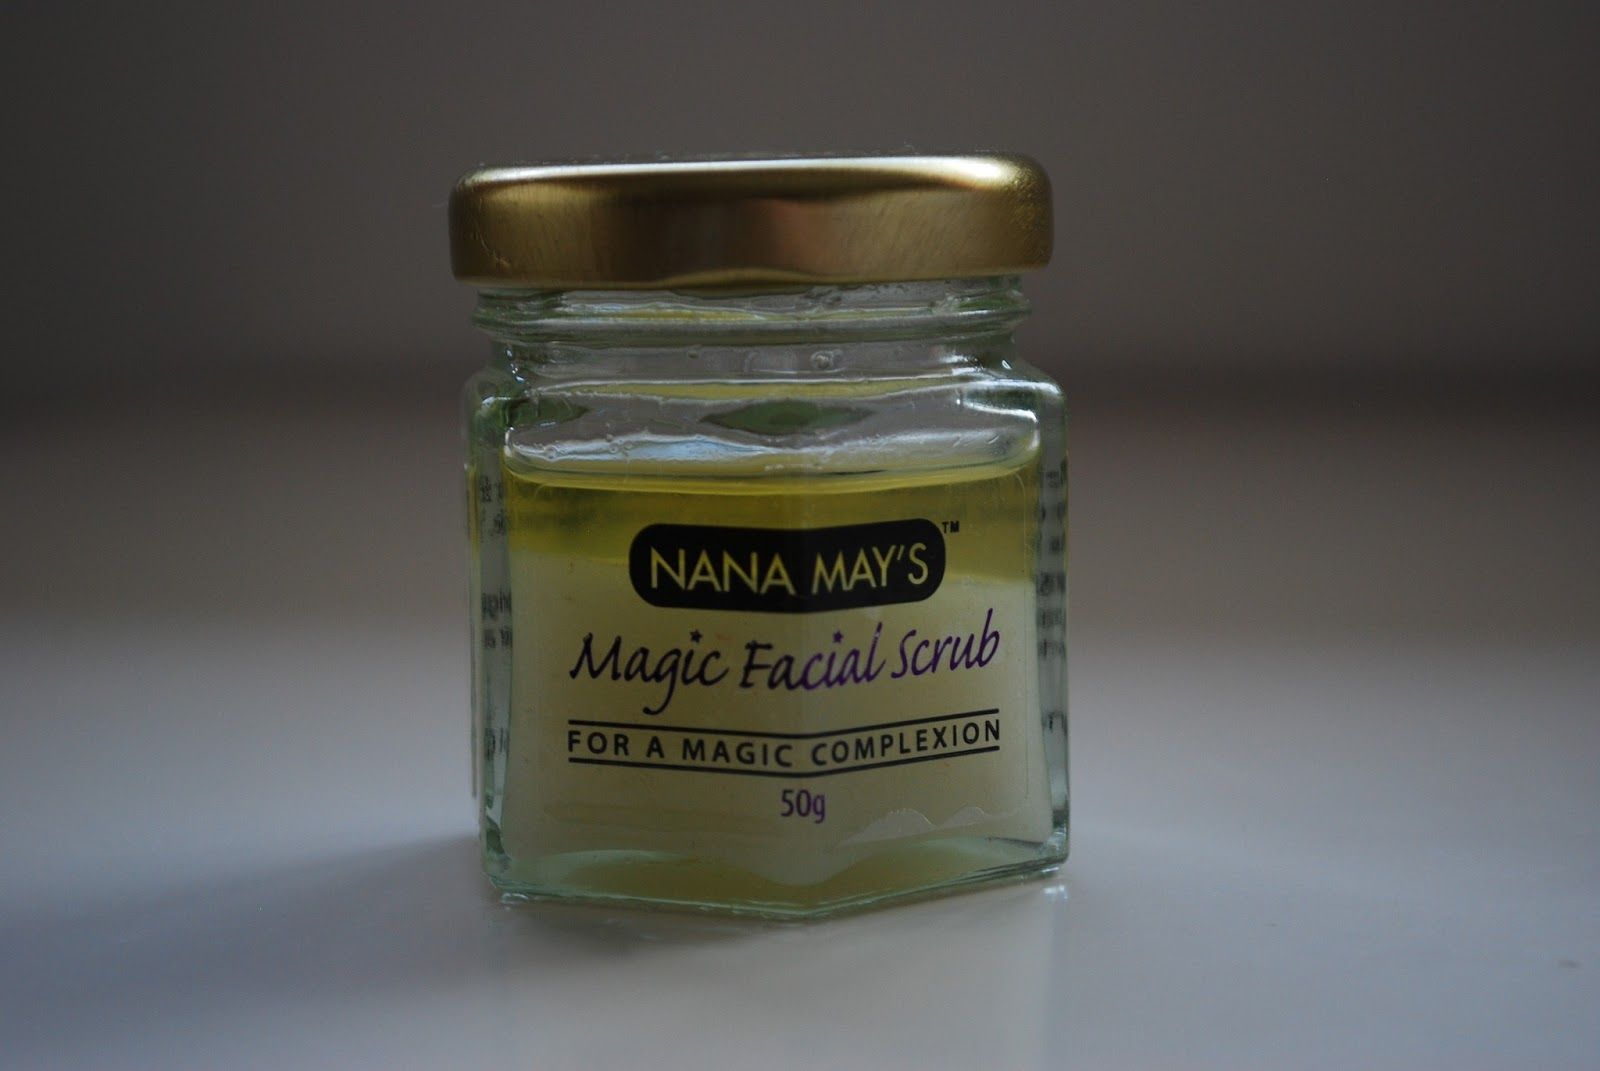 Nana mays magic facial scrub